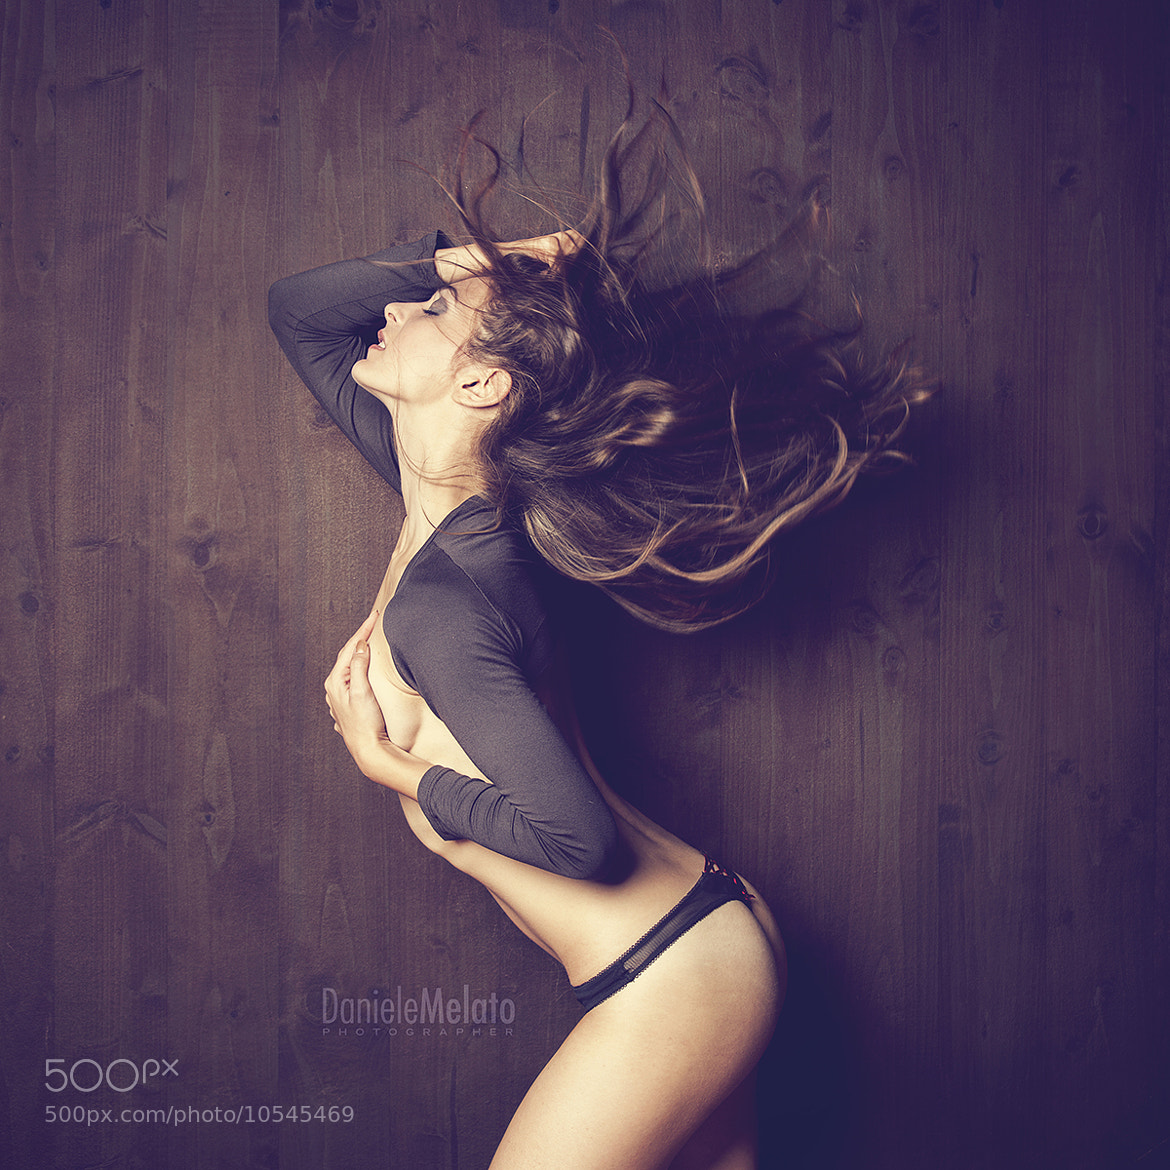 Photograph Eleonora by Daniele Melato on 500px